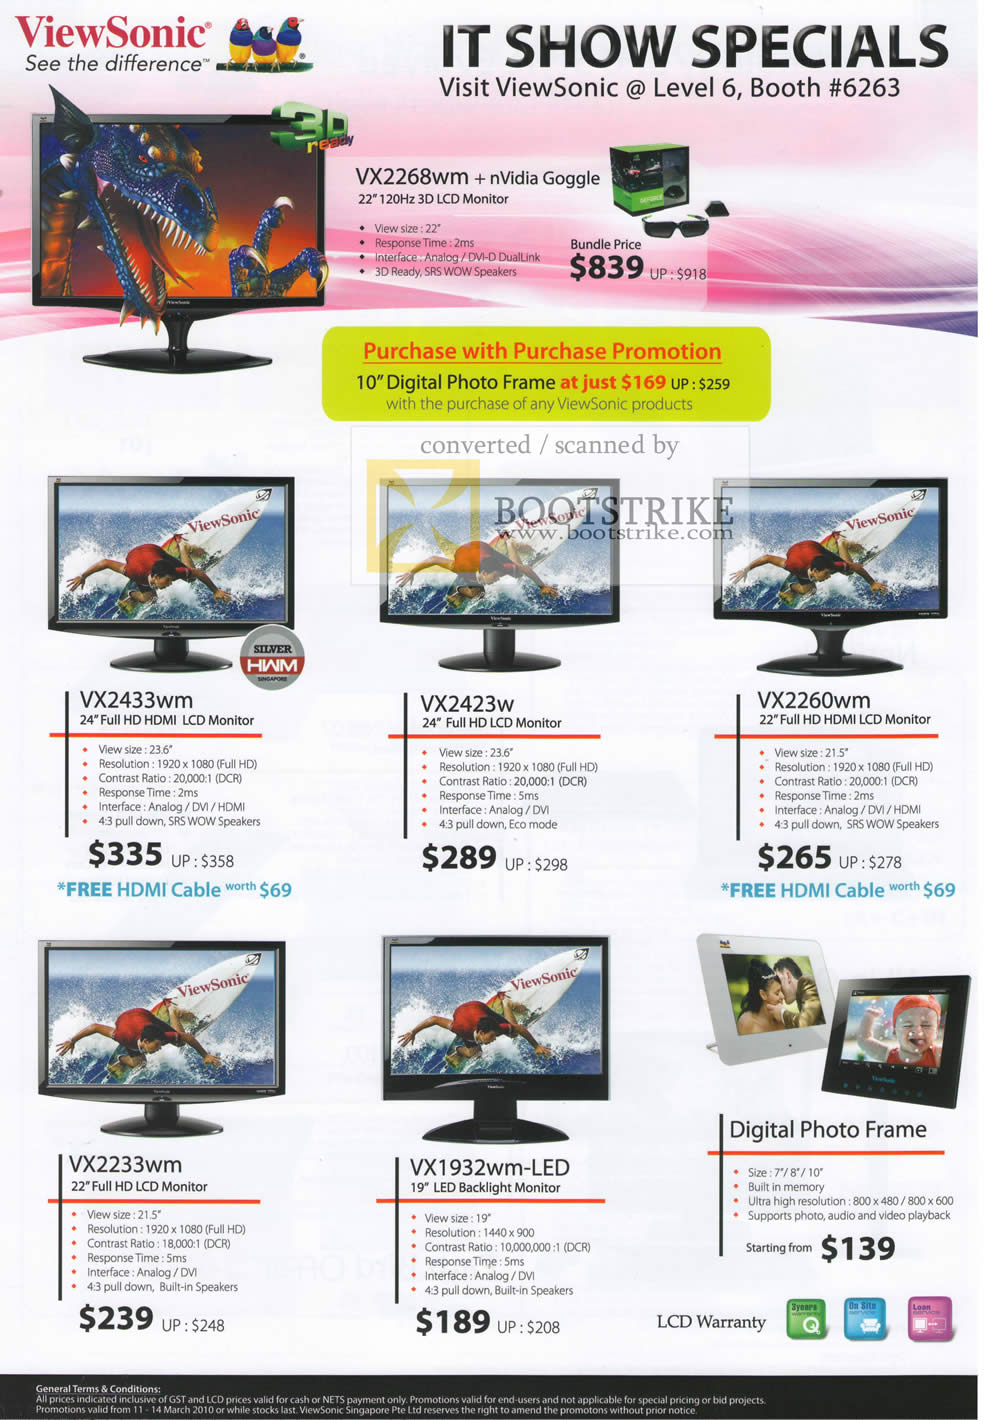 IT Show 2010 price list image brochure of Viewsonic LCD Monitors 3D VX2268wm VX2433wm VX2423w VX2260wm VX2233wm VX1932wm LED Digital Photo Frame